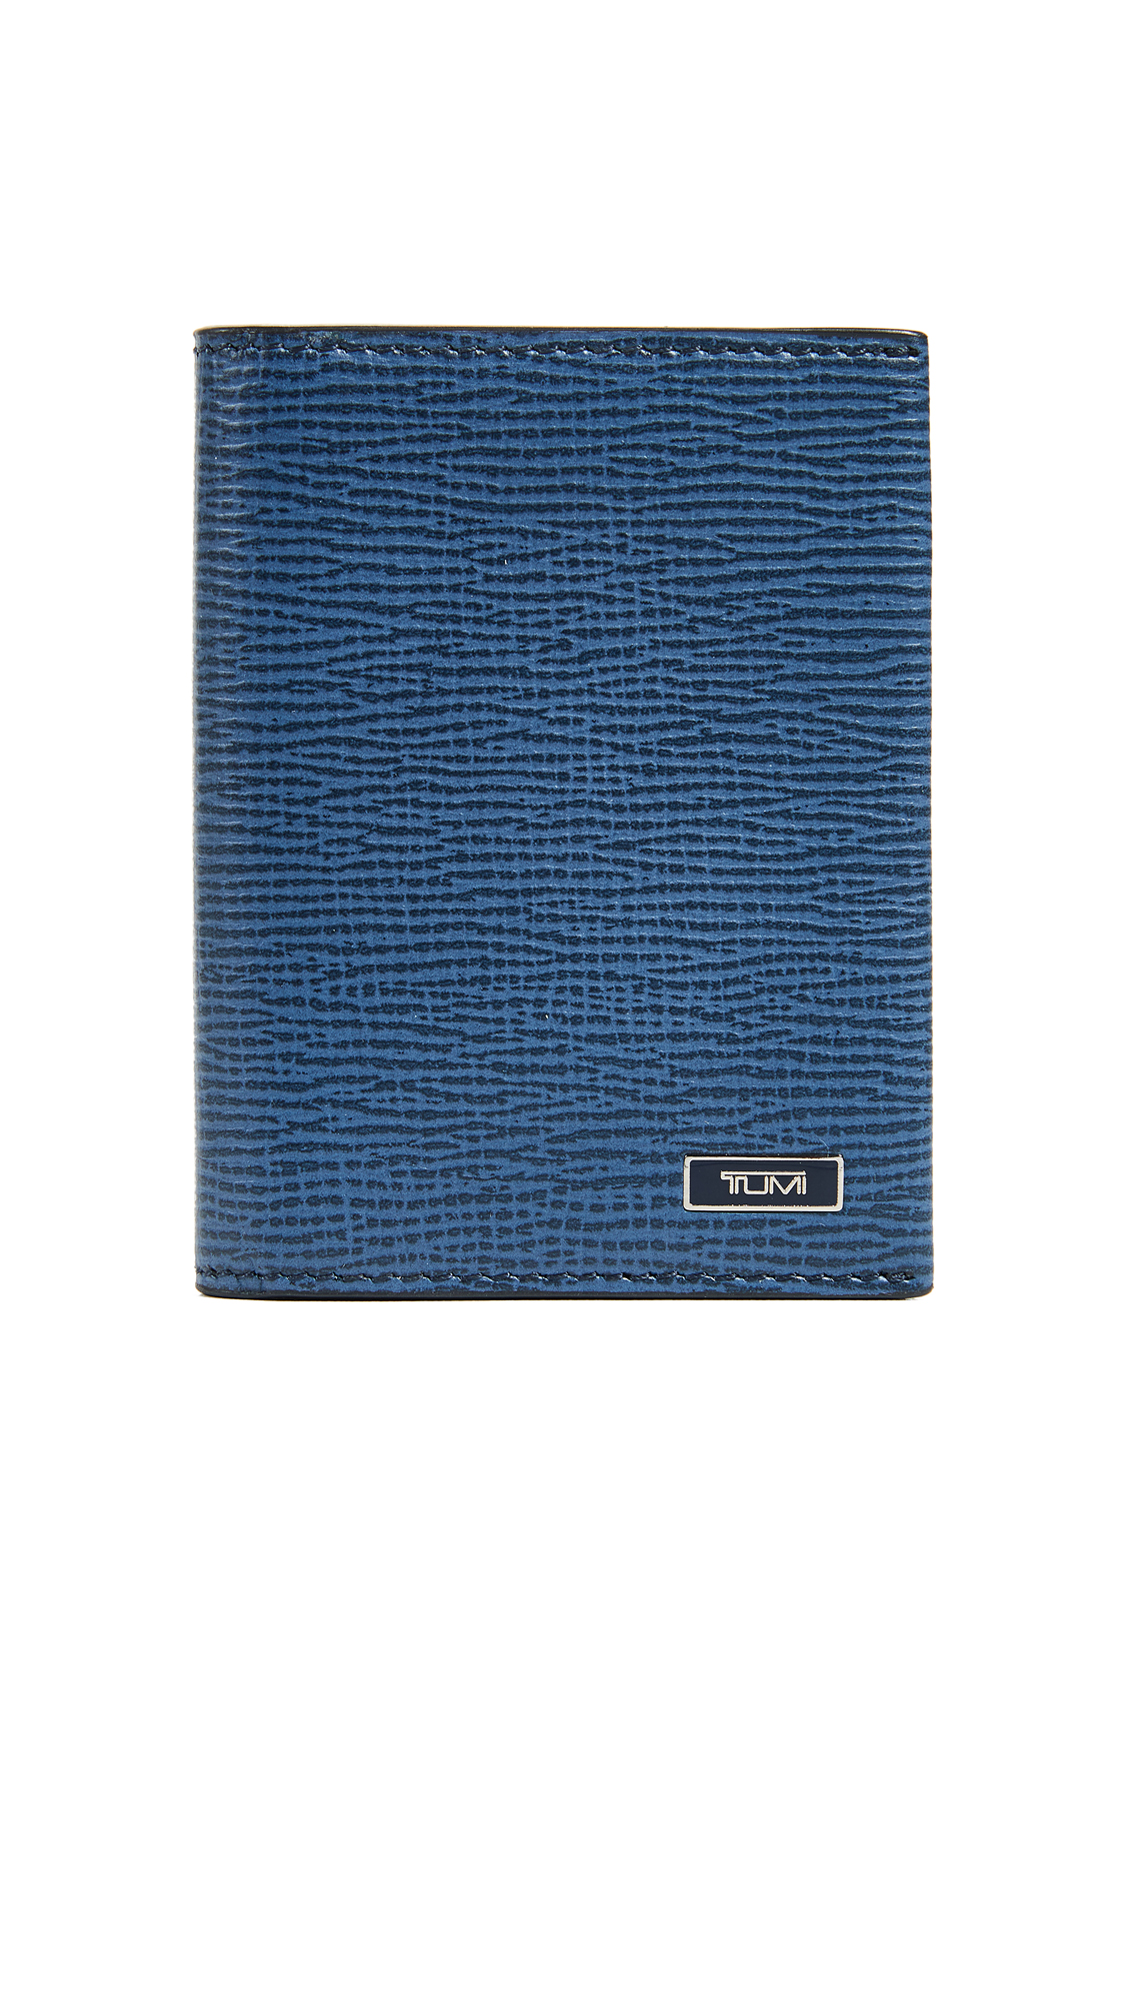 Tumi Monaco Gusseted Card Case - Cobalt